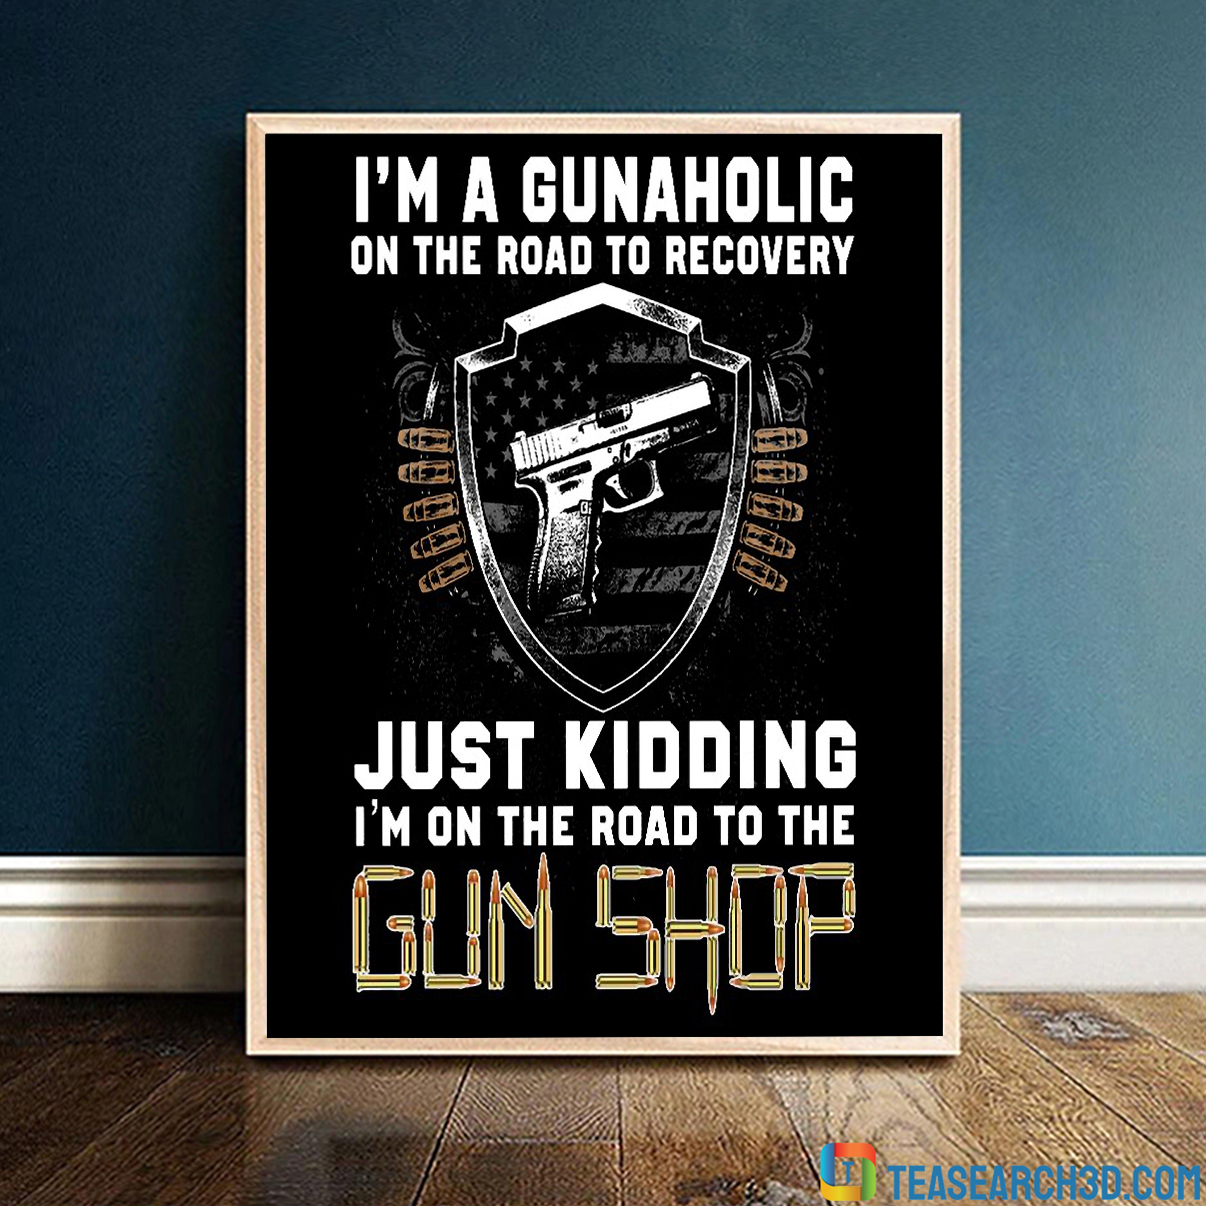 I'm a gunaholic on the road to recovery poster A4